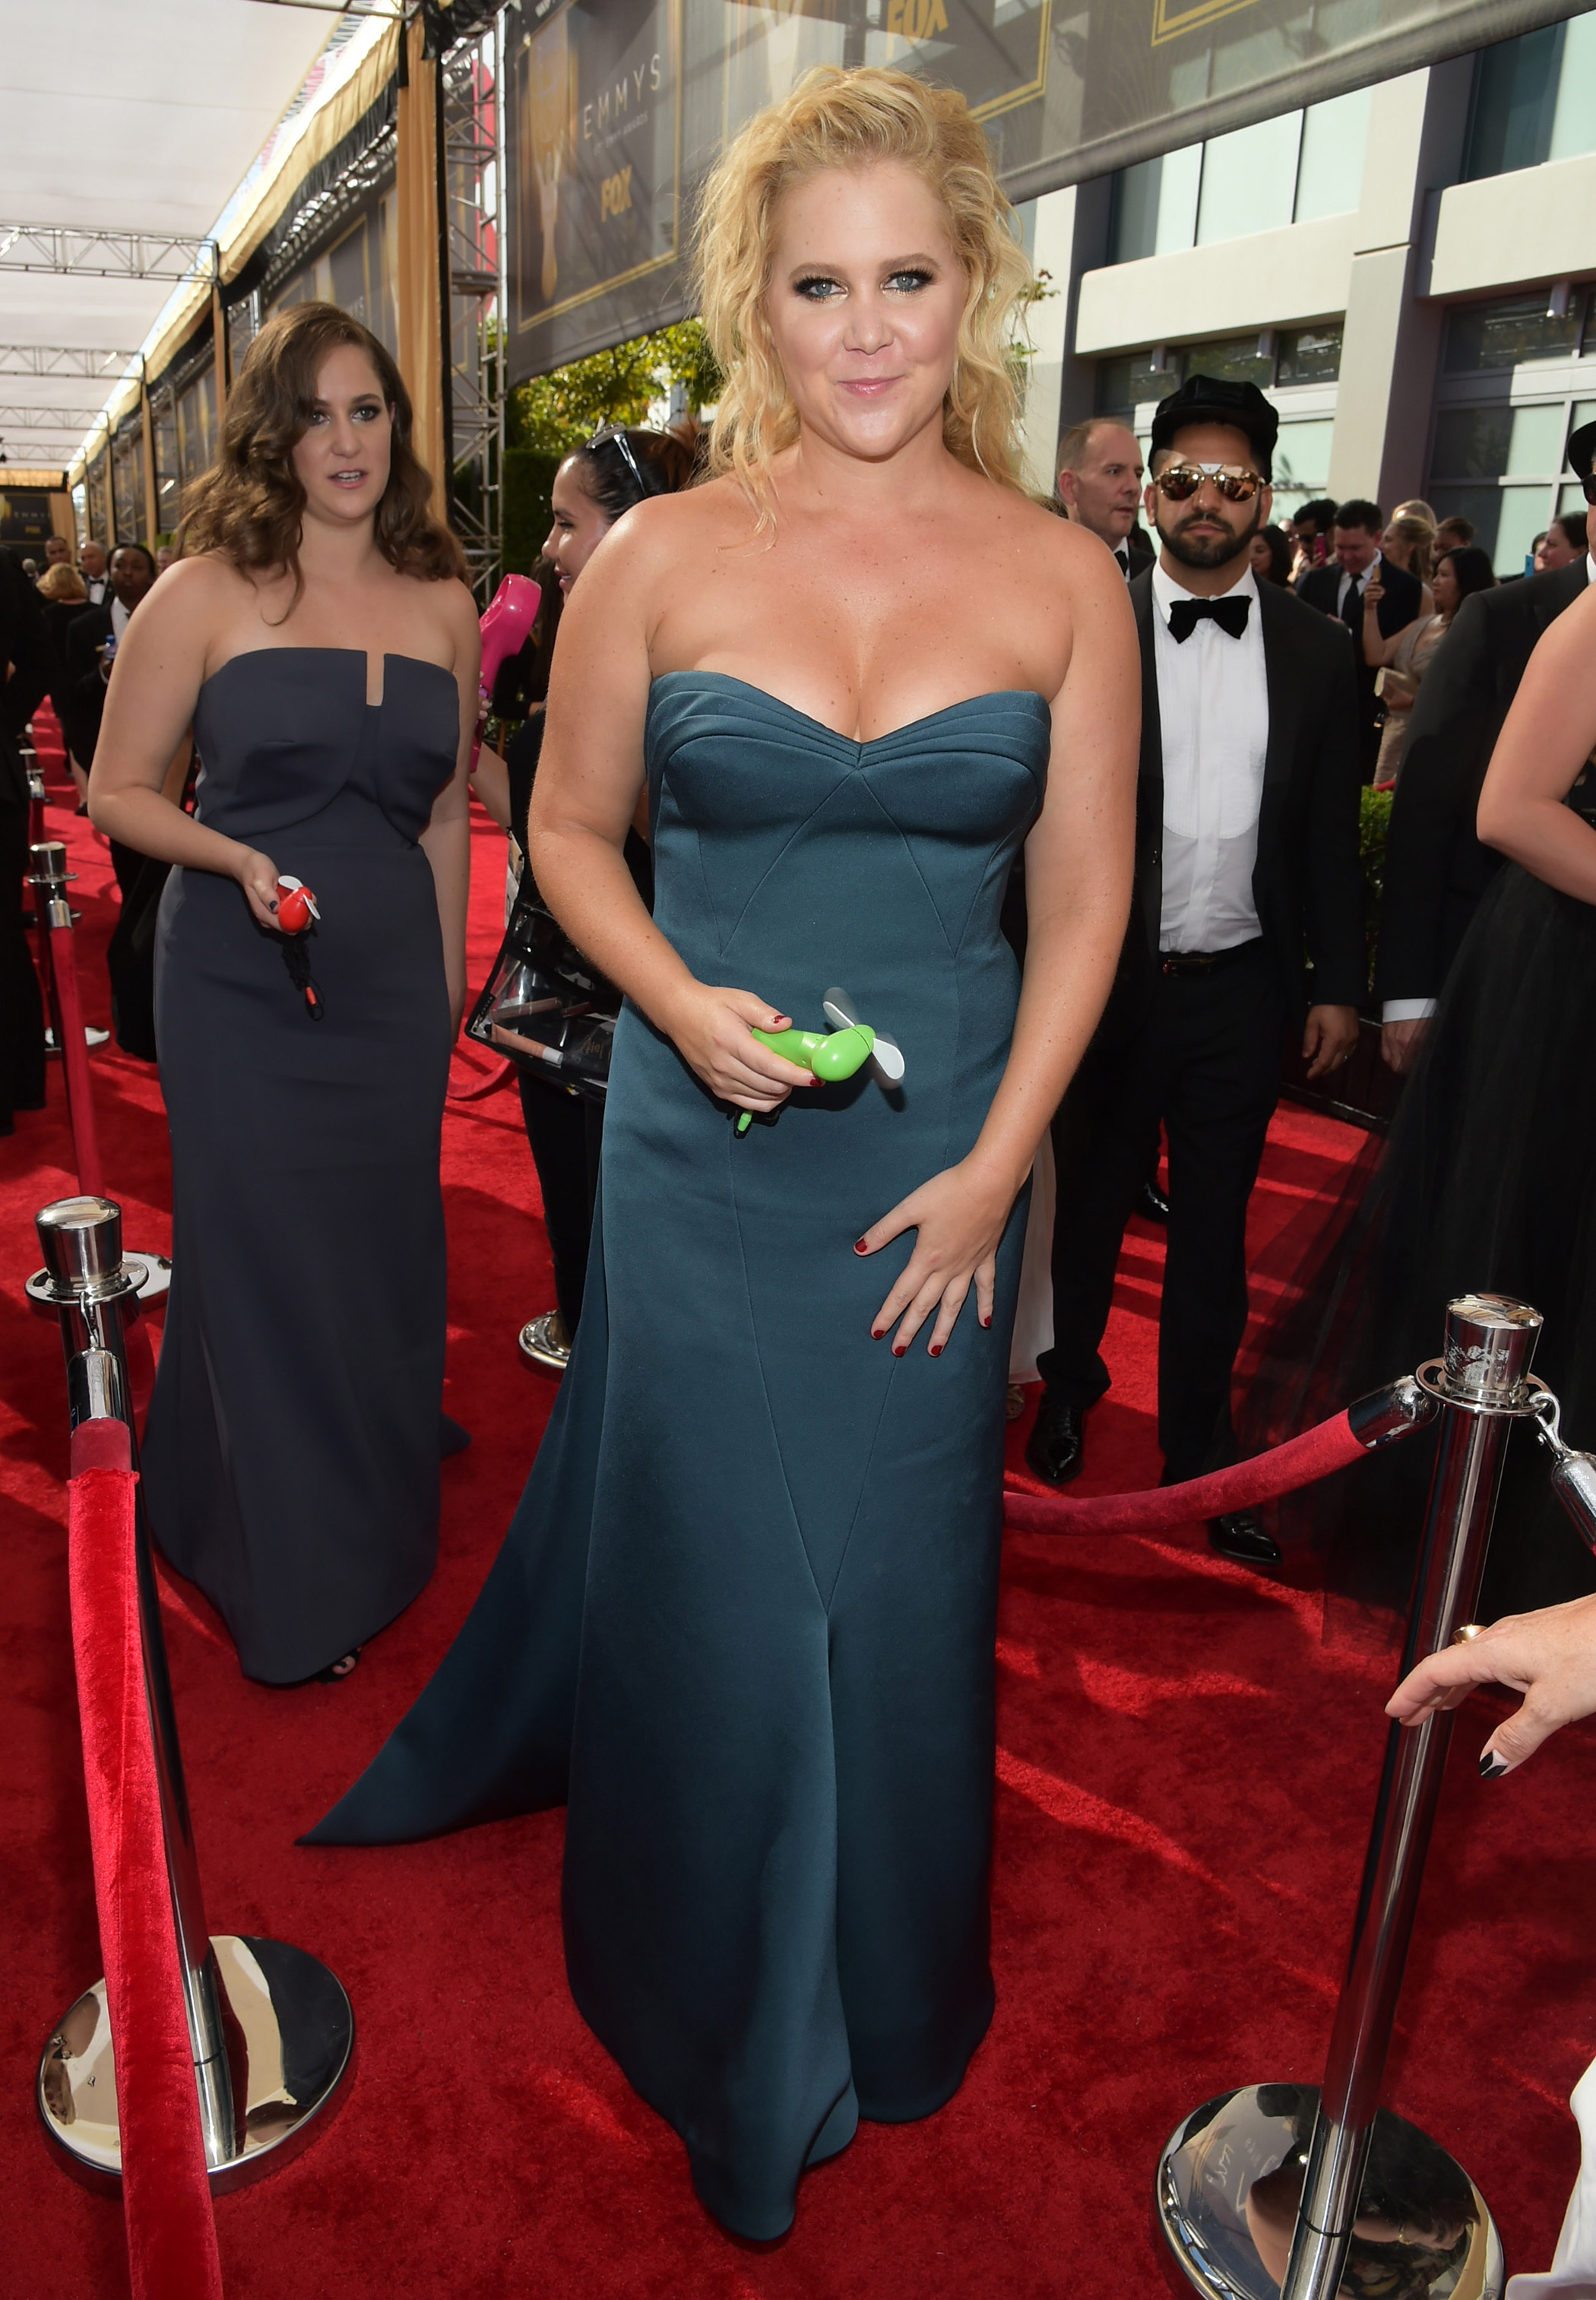 Amy Schumer at the 67th Emmy Award on Sept. 20, 2015 in Los Angeles.